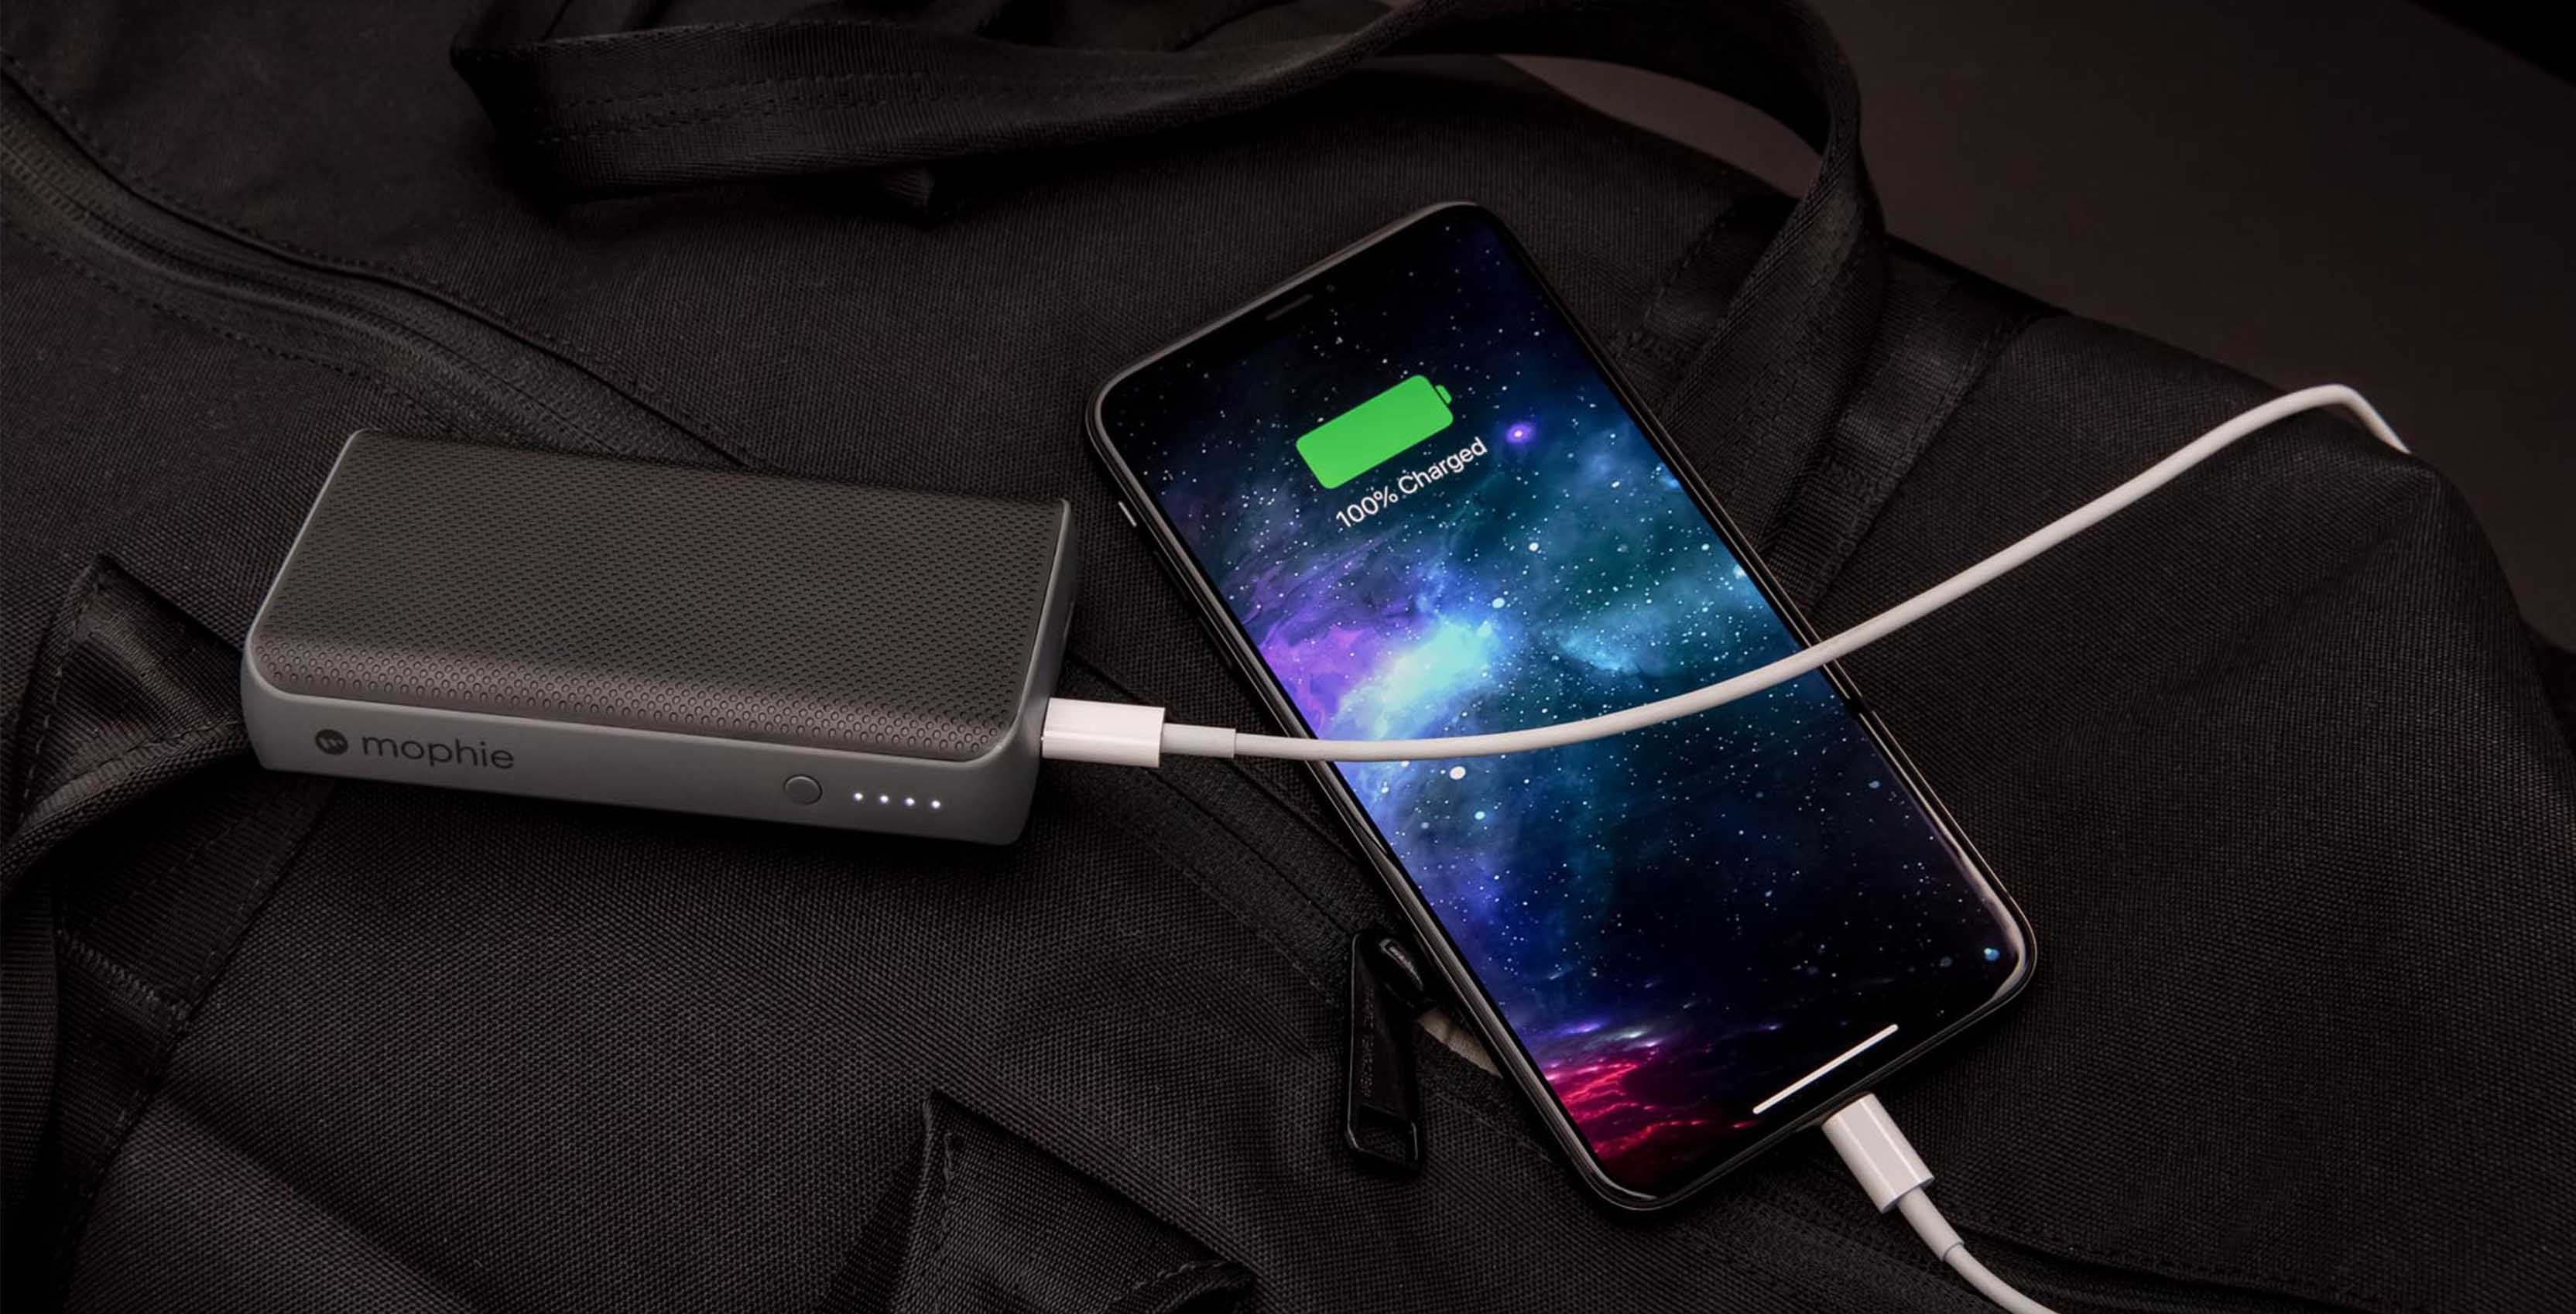 new products bb111 3a0a4 Mophie's new power banks use USB-C, fast charging to keep you charged